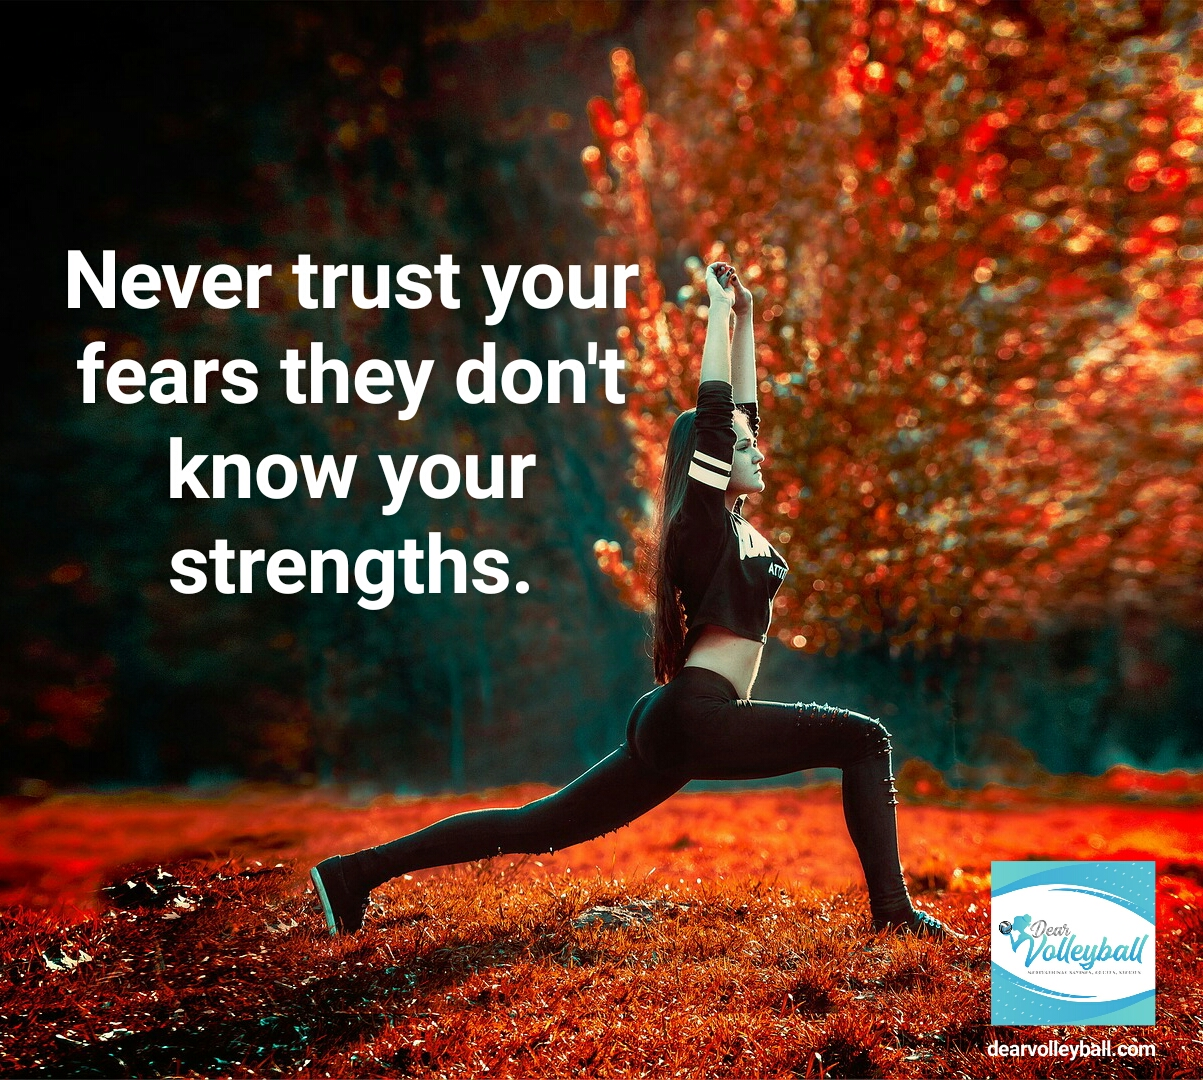 Never trust your fears, they dont know your strengths and more volleyball motivational quotes on DearVolleyball.